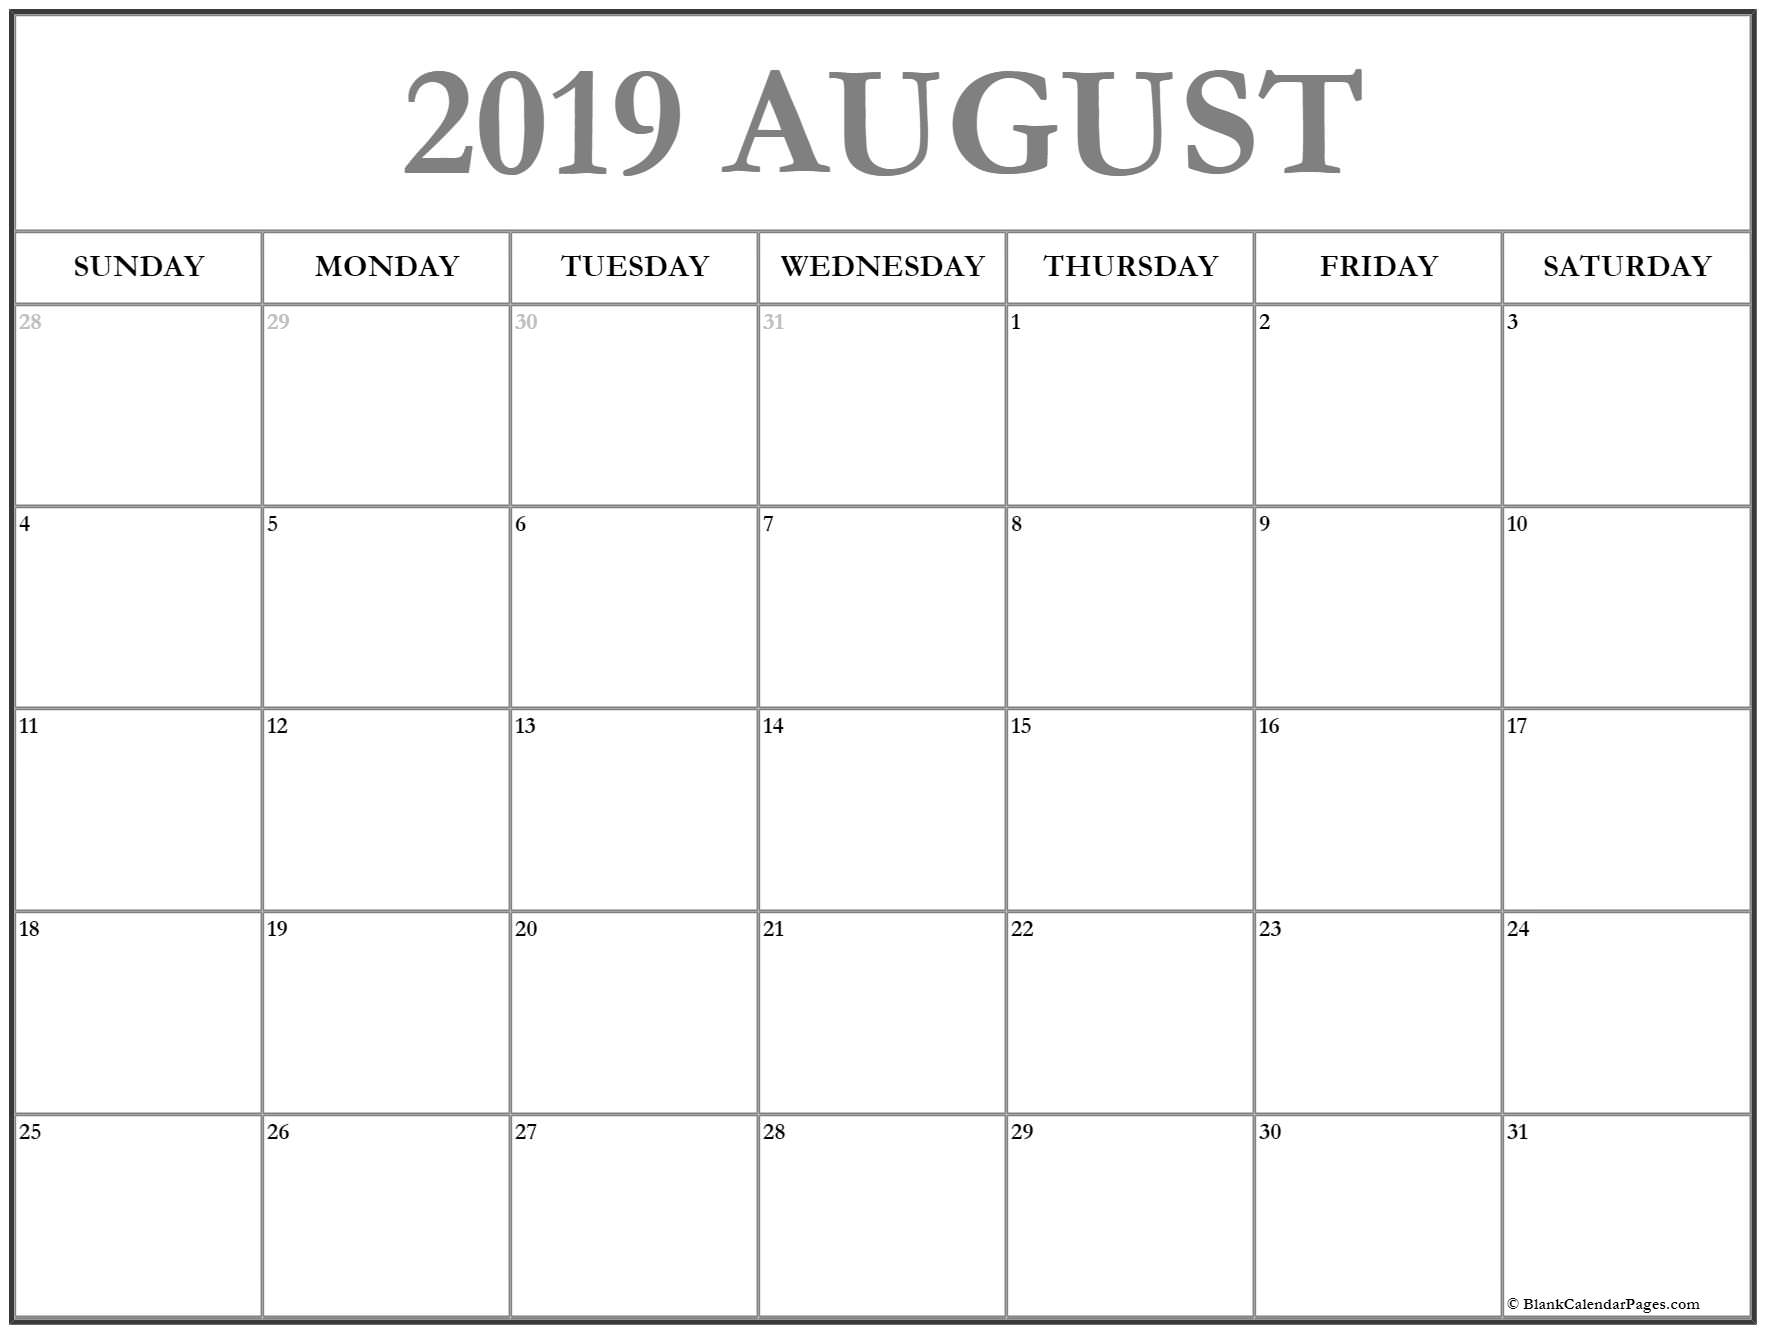 August 2019 Calendar | Free Printable Monthly Calendars with Blank Printable Calendar Pages Aug